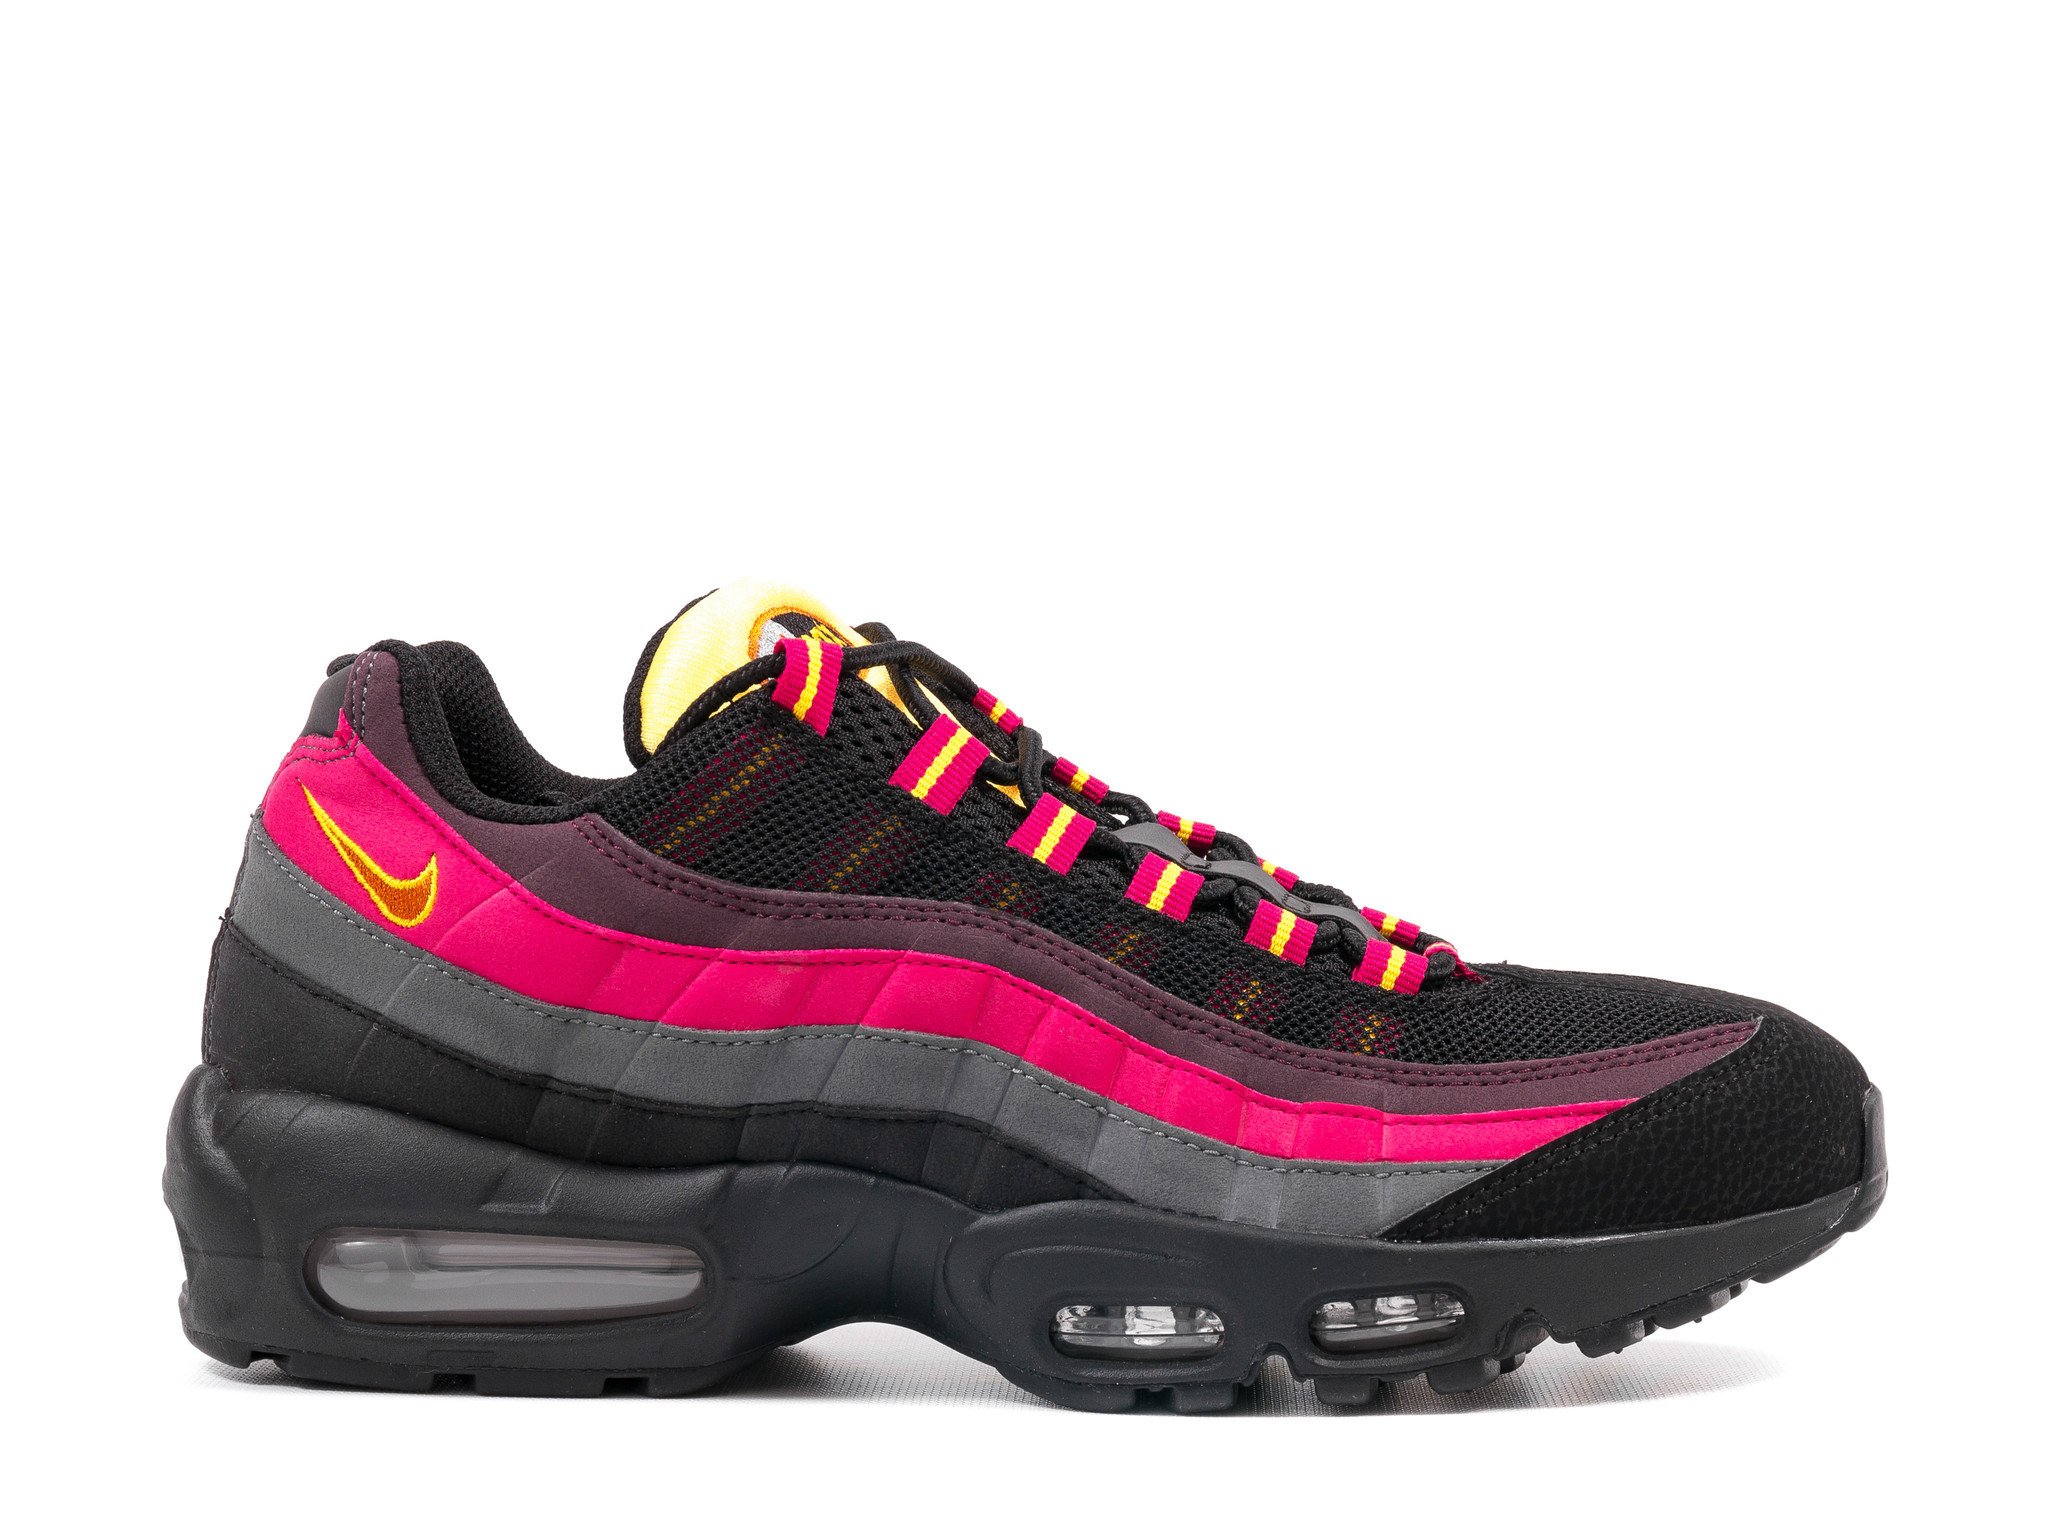 am95 Archives Page 2 of 6 Air 23 Air Jordan Release